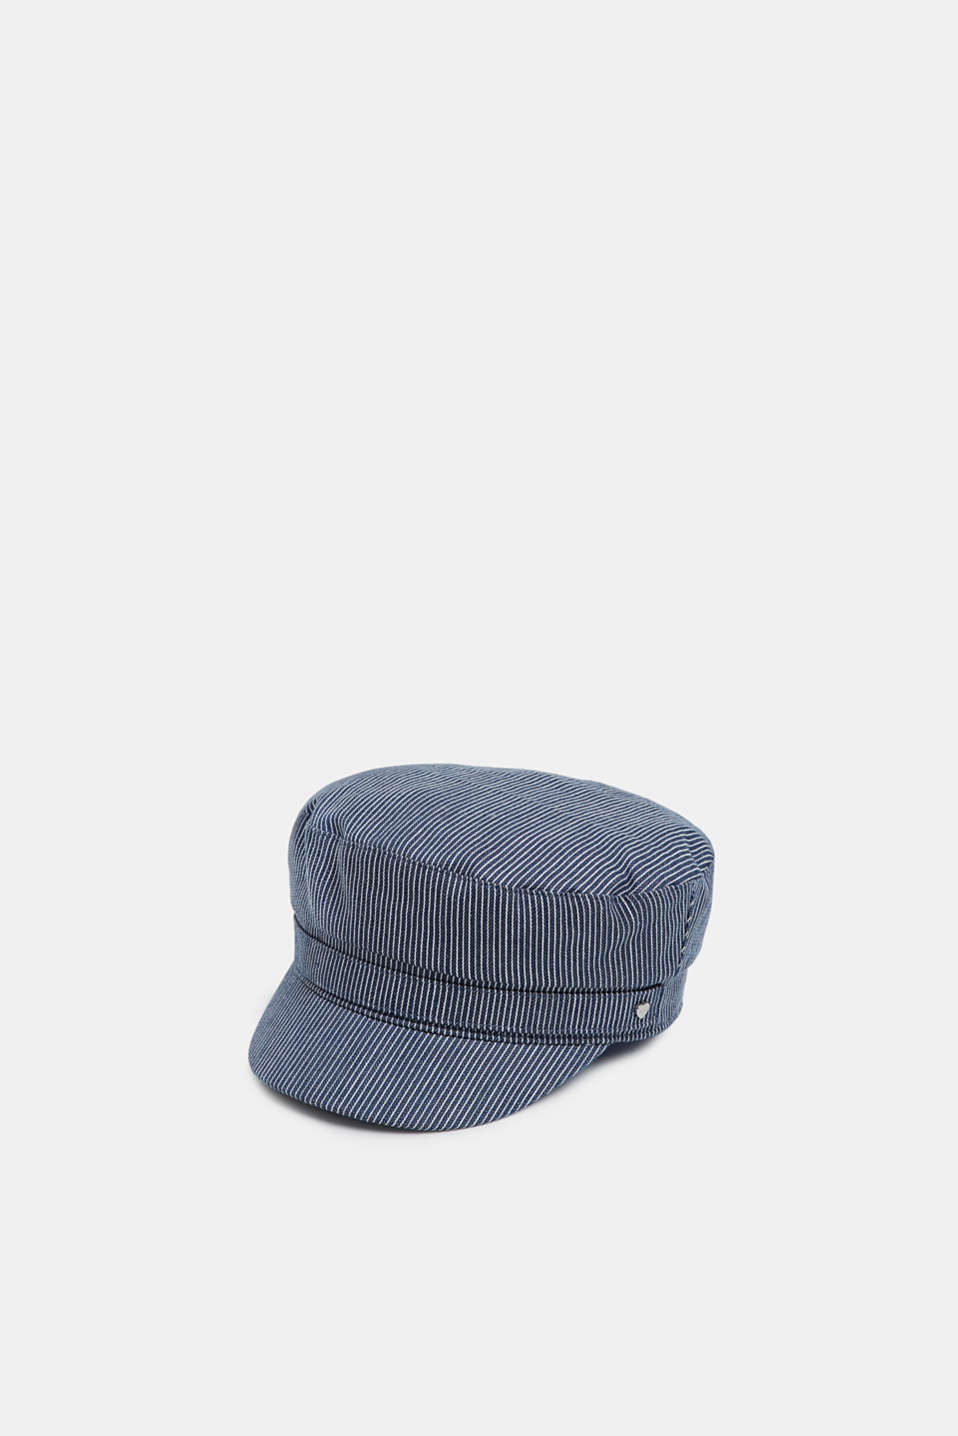 Esprit - Sailor's cap with stripes